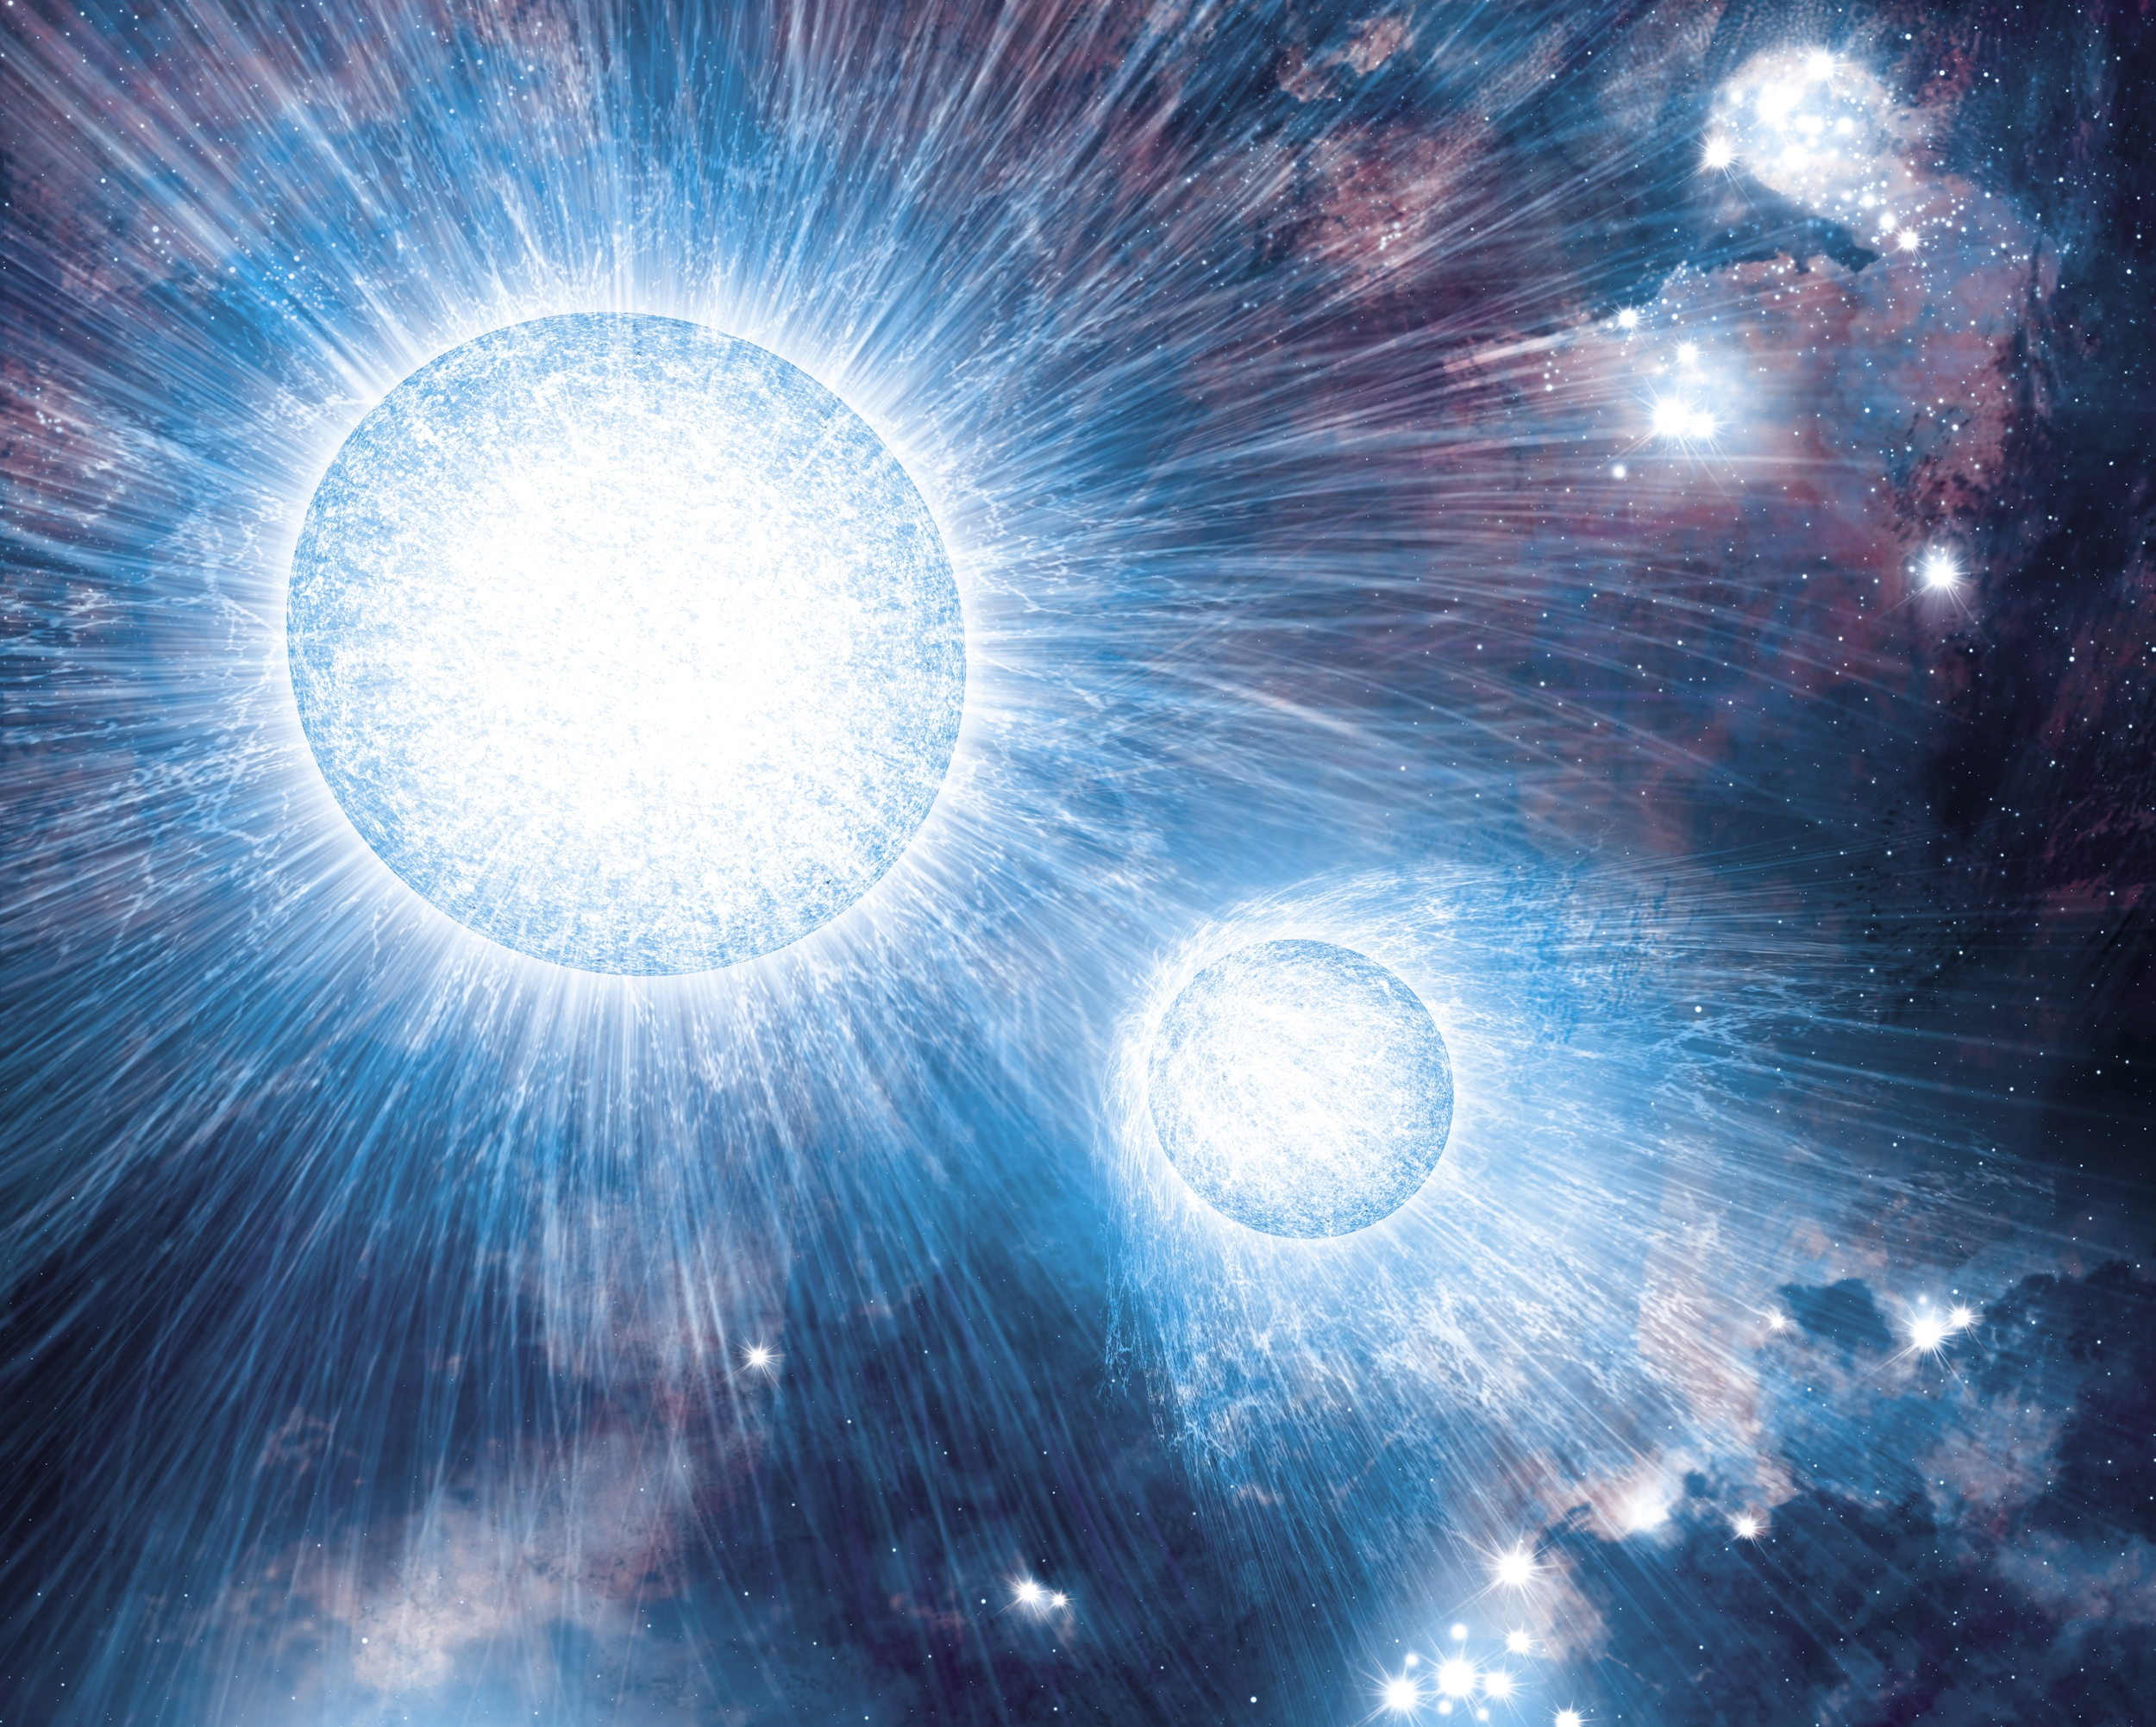 pictures of outer space in the white dwarf - photo #22